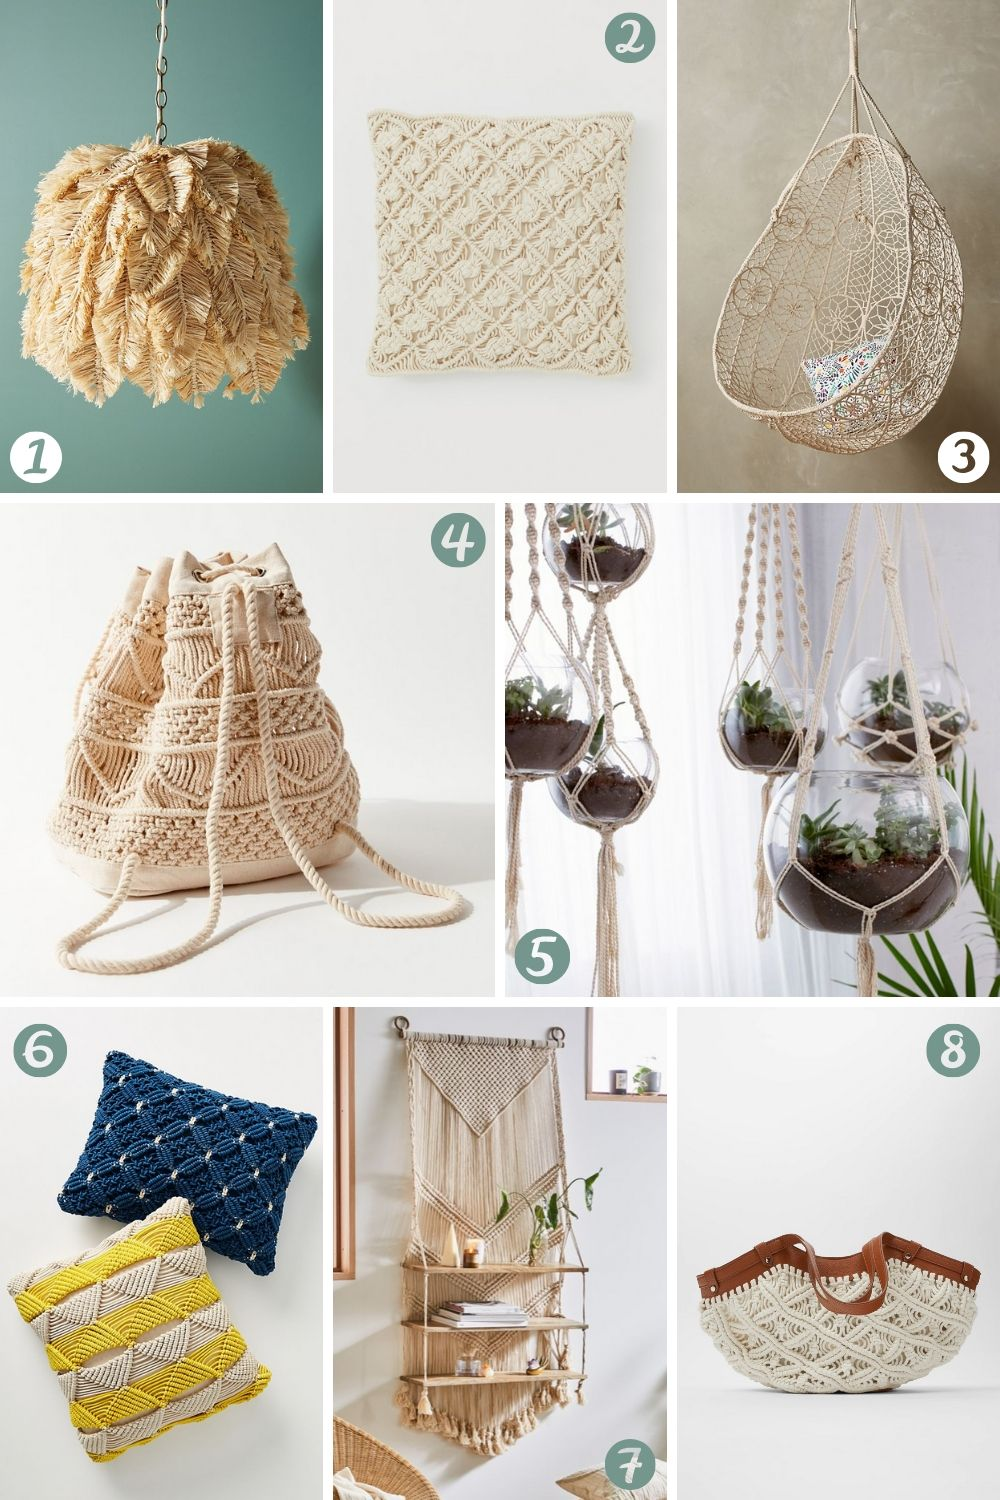 Macrame Products - Boho Macrame Musthaves for Summer 2020